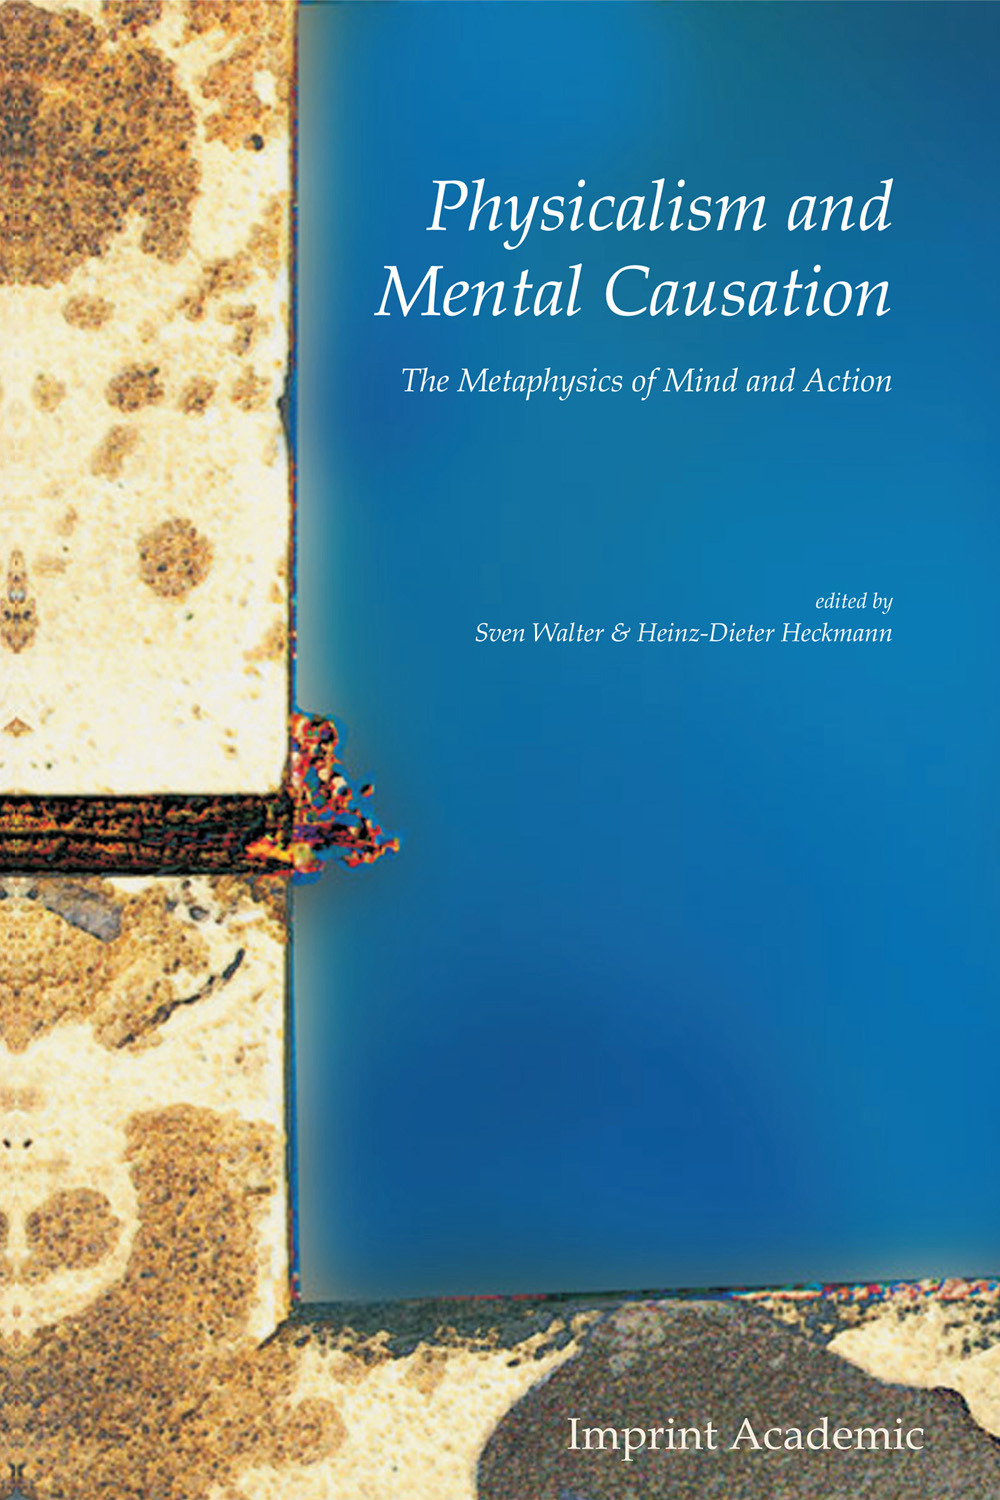 Physicalism and Mental Causation